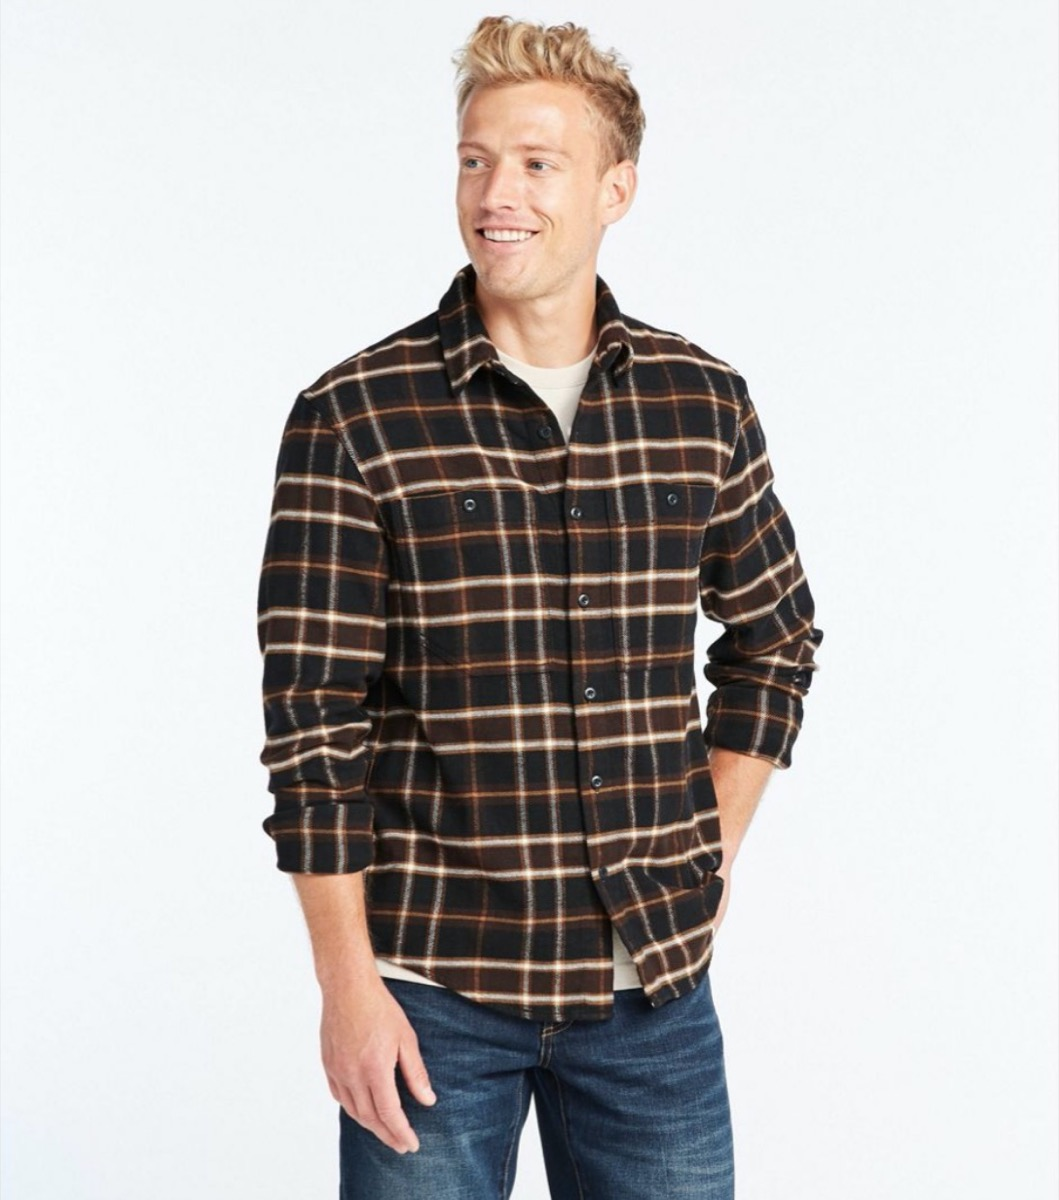 young man in brown and black plaid shirt and jeans